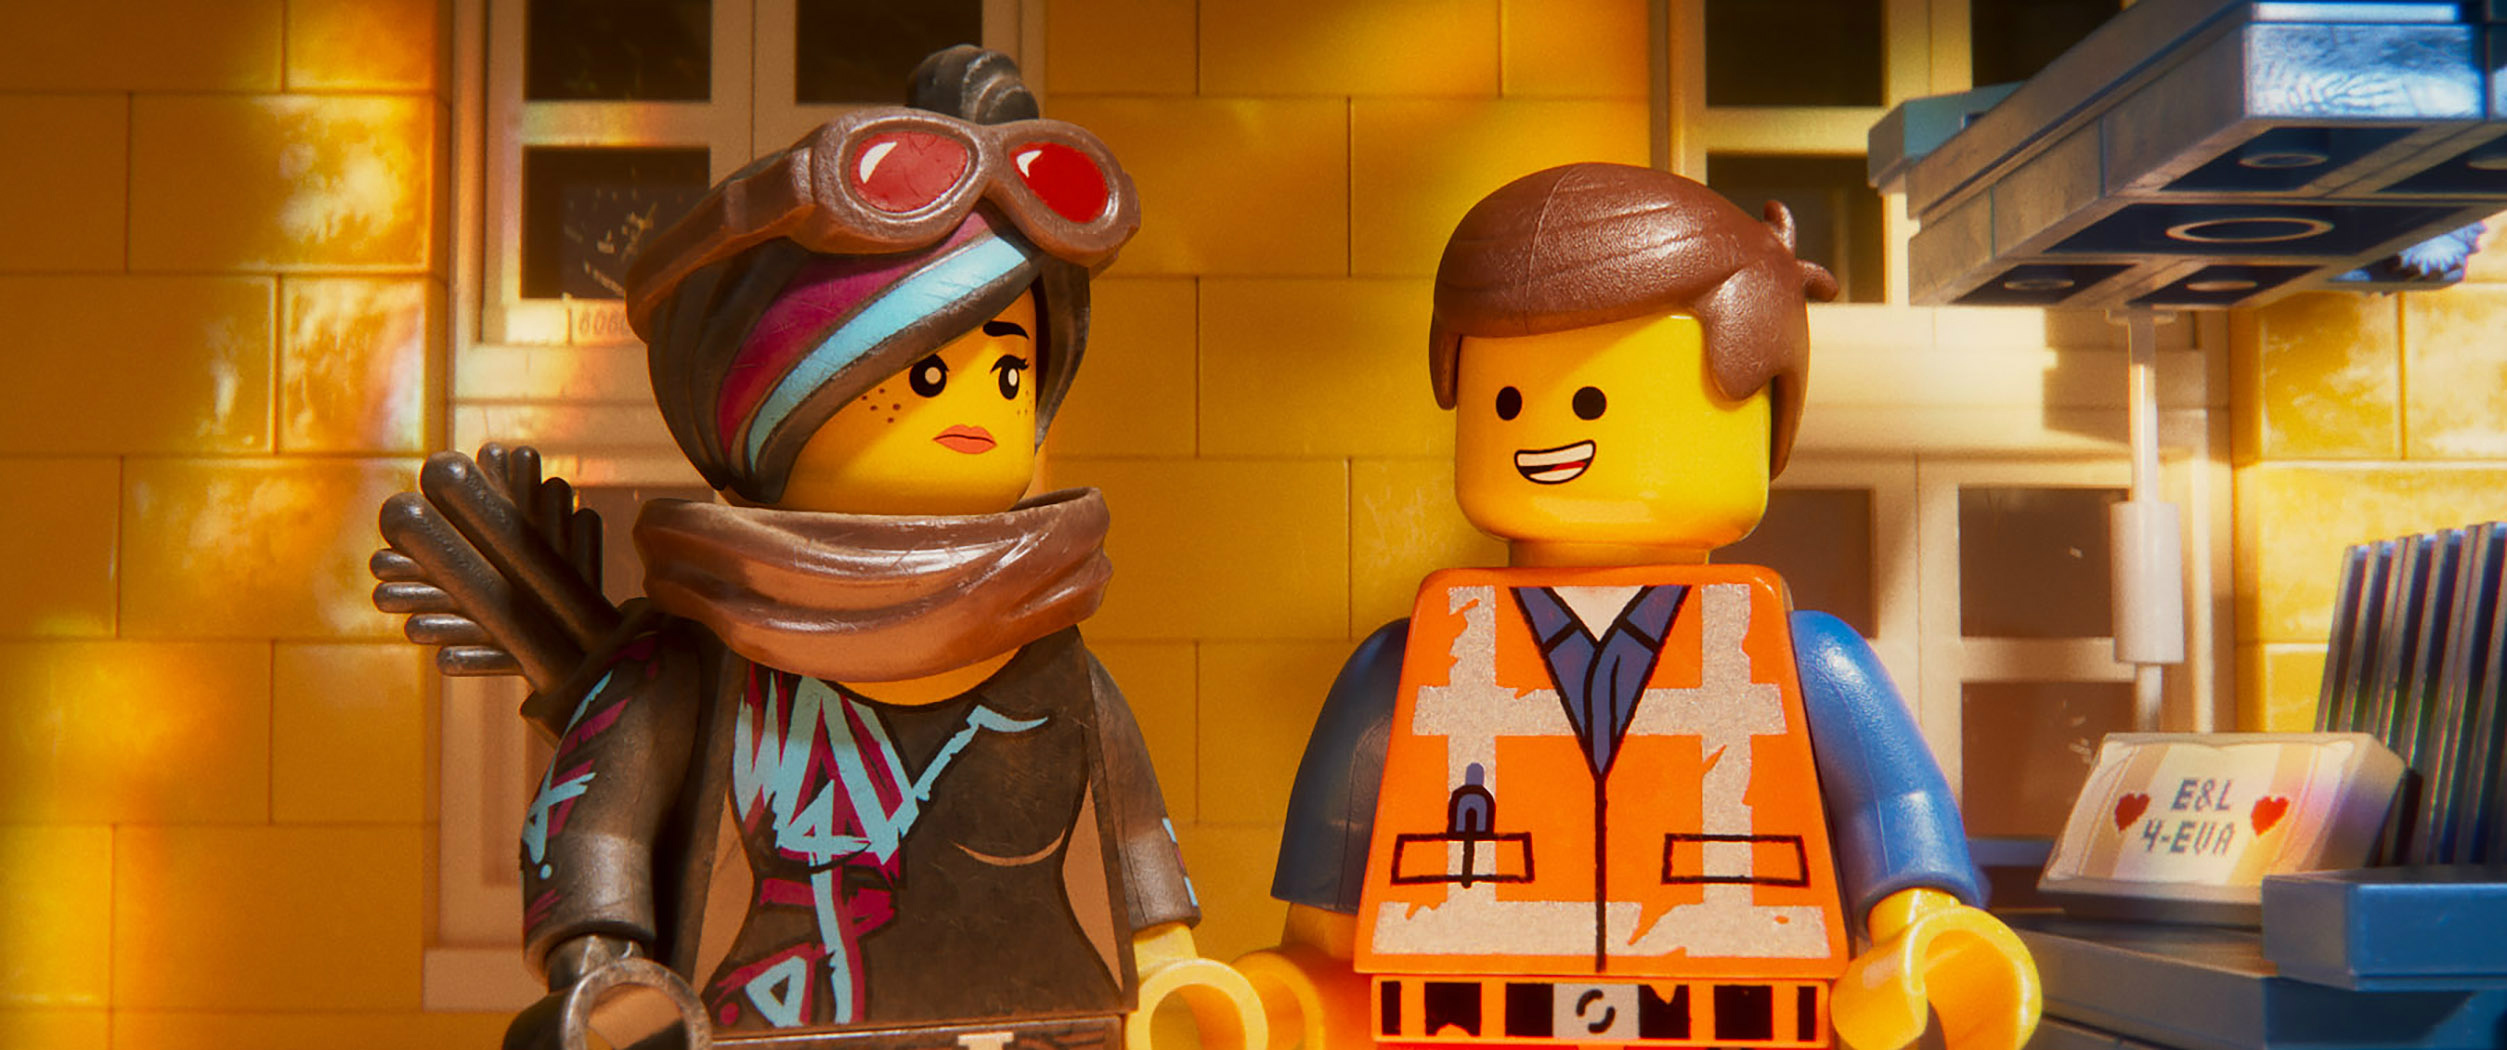 The Lego Movie: The Second Part